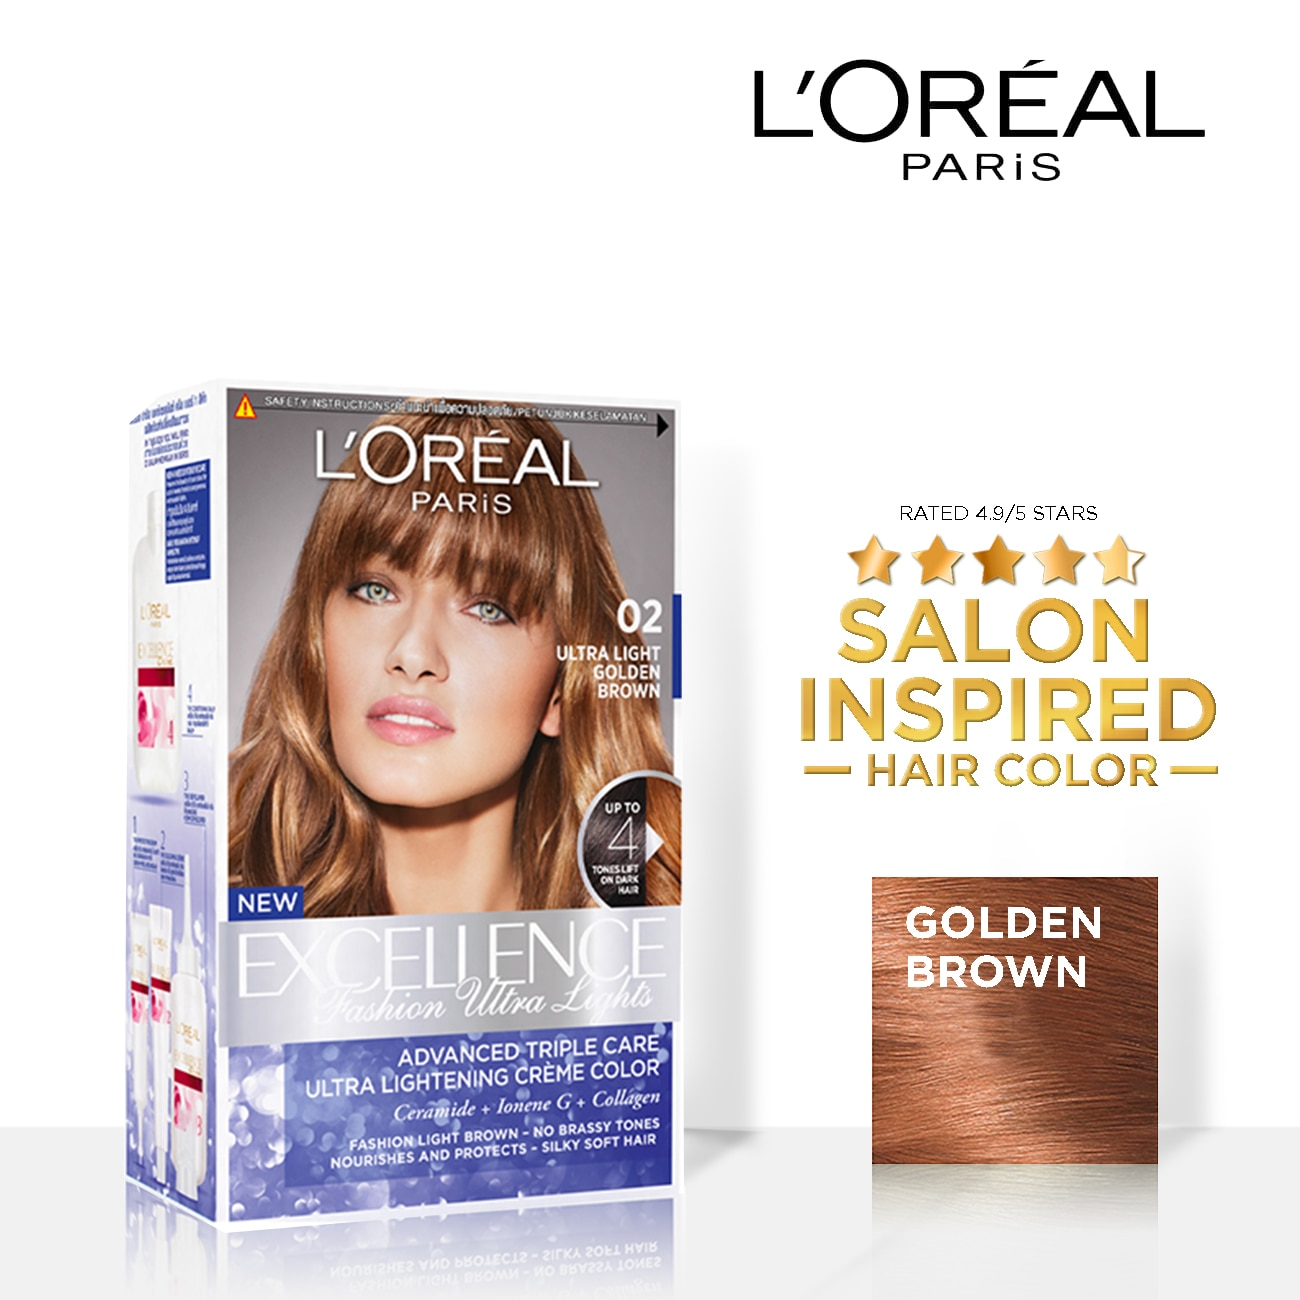 Excellence Fashion Ultra Lights - 02 Golden Brown  Triple Care Hair Color